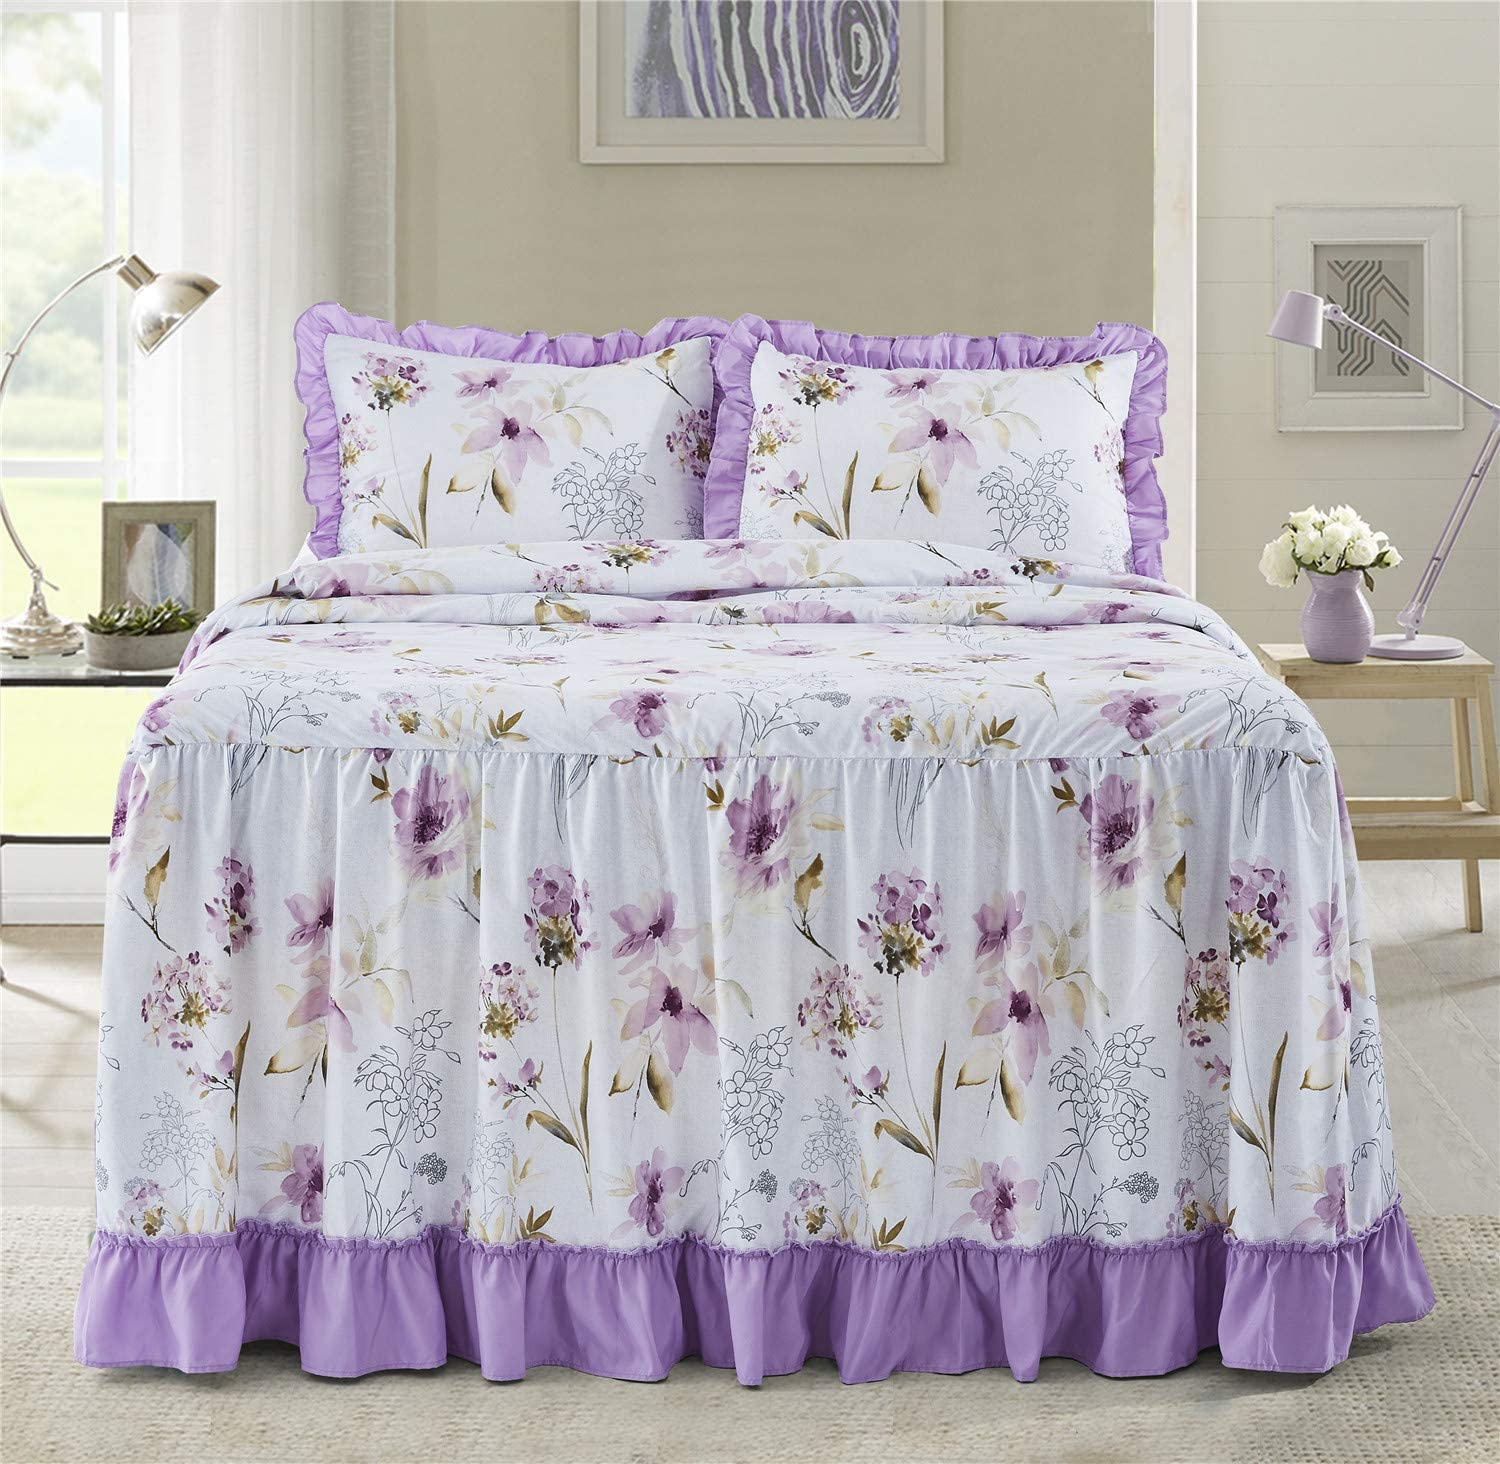 bednlinens/&things 3PC Feminine Alina Aqua, Queen Shabby Chic Ruffle Skirt Bedspread Stylish Comfy Decorative Cover Twin Queen King